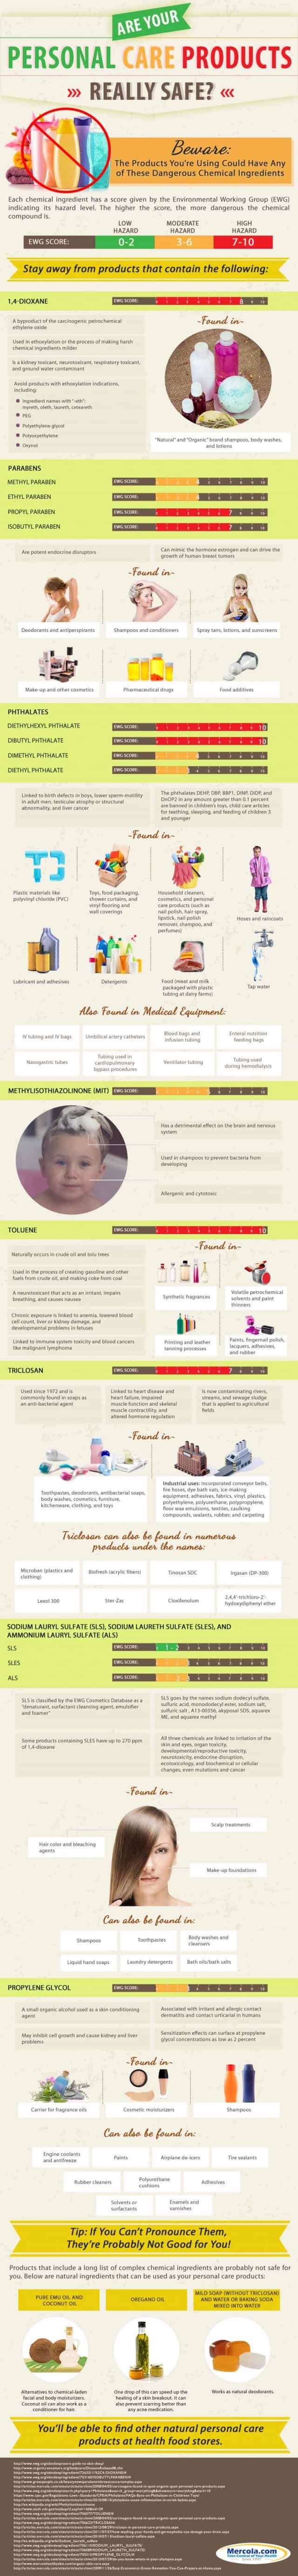 mercola infographic - hidden dangers in personal care products